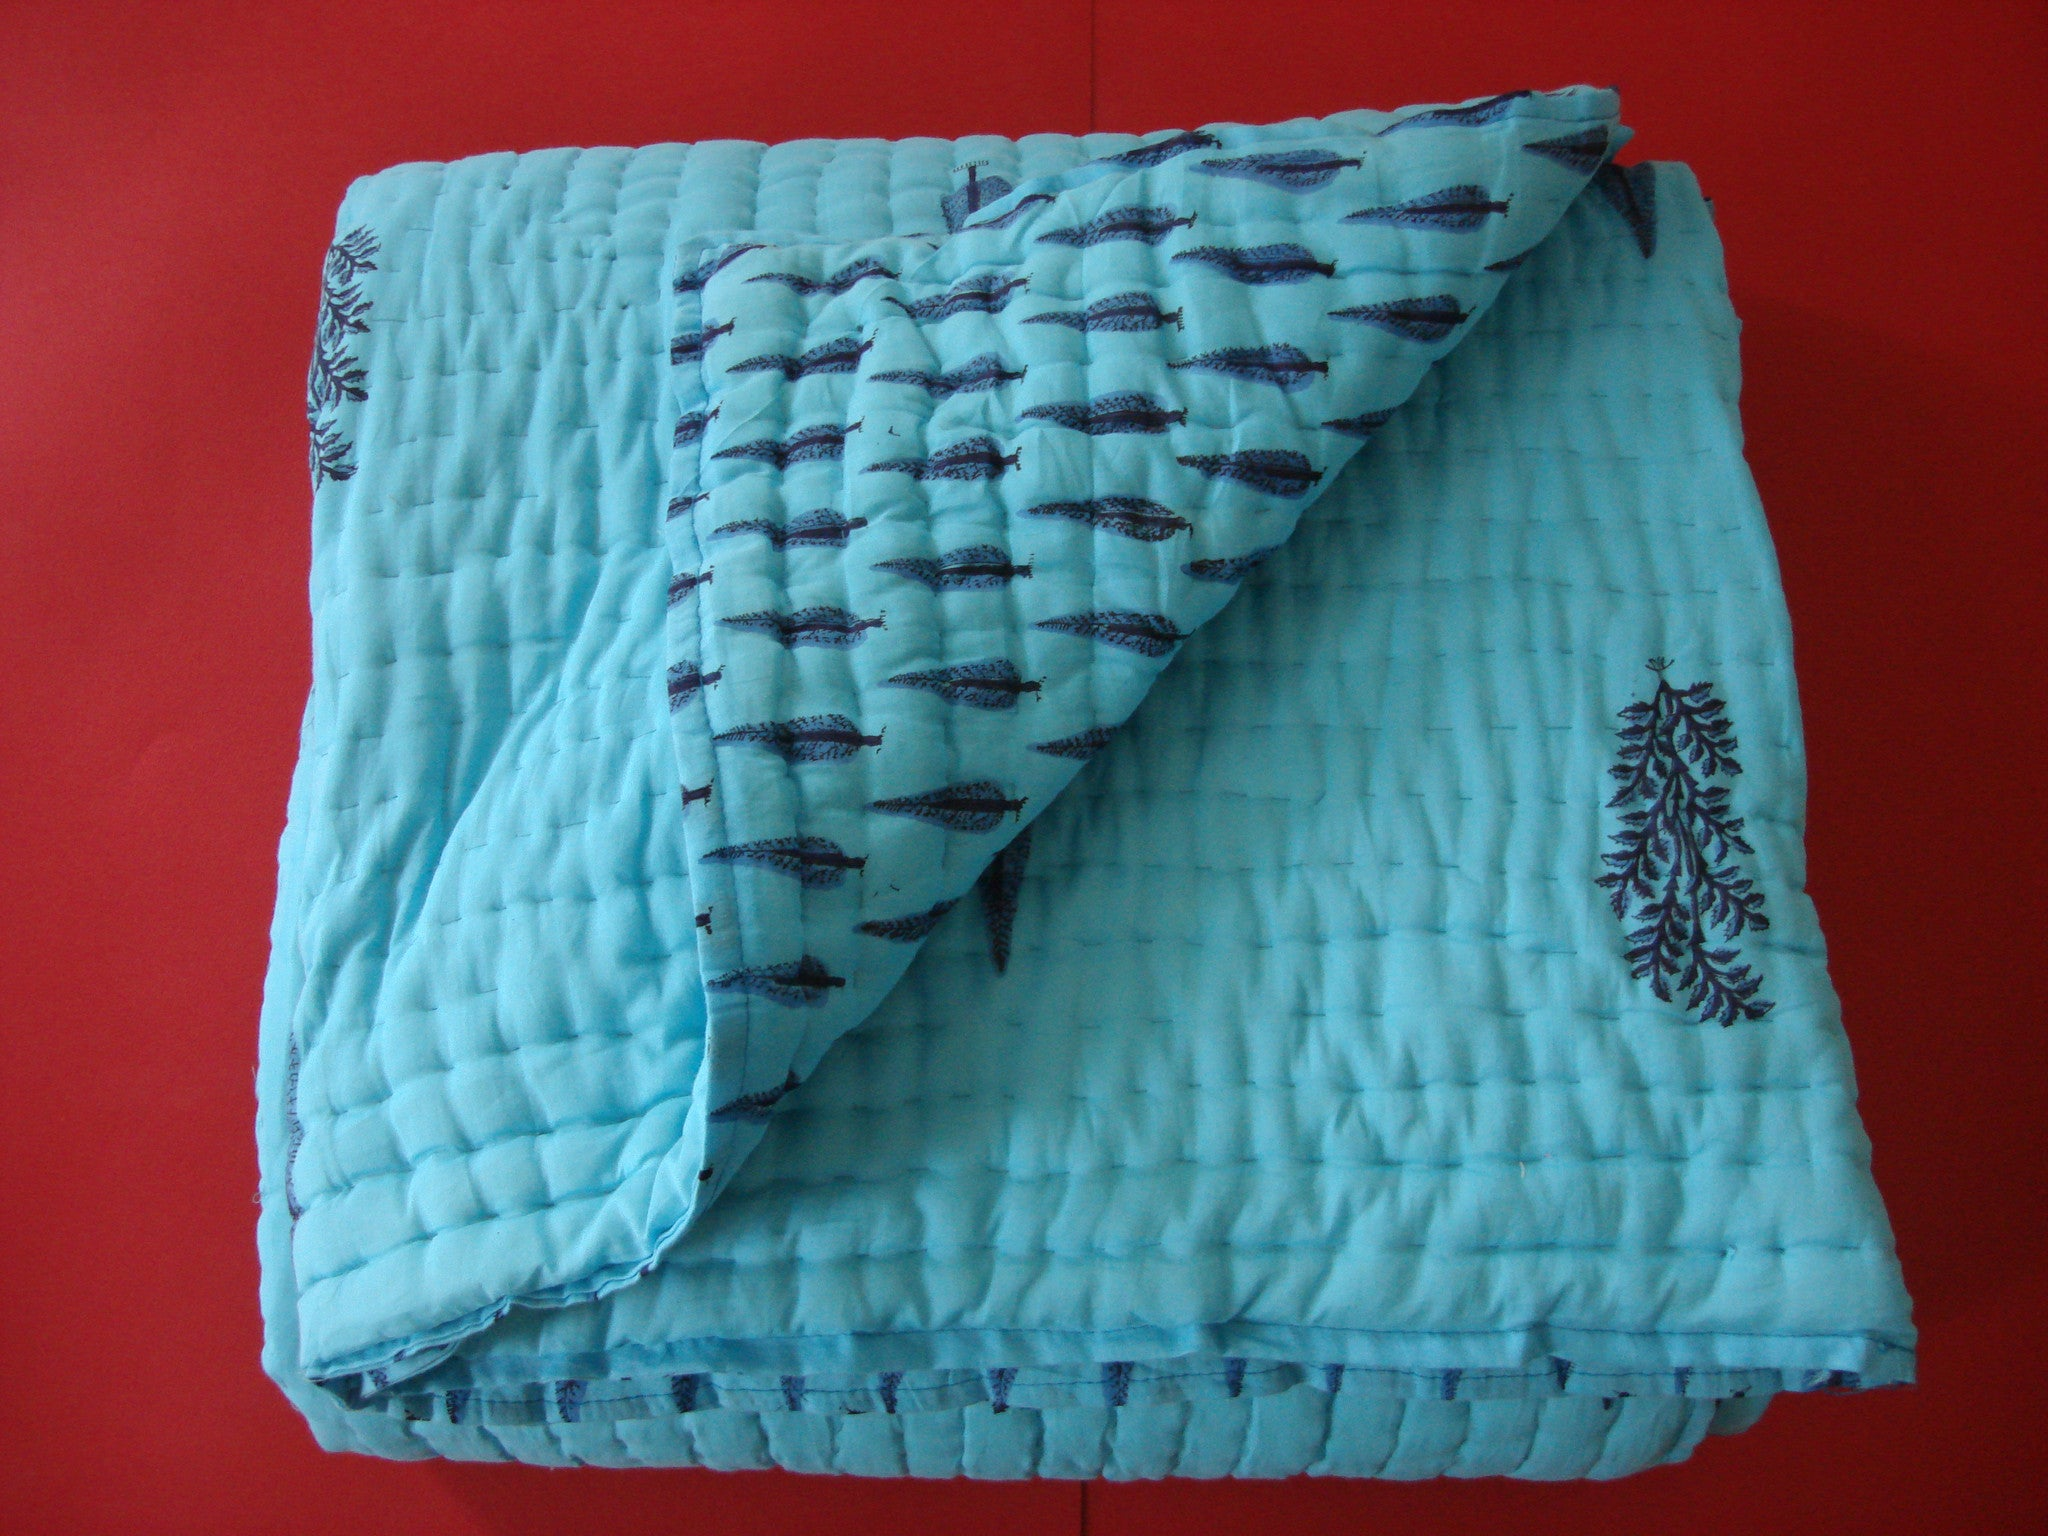 QBP 106 - Handmade, reversible, cotton, block printed quilt in turquoise blue - Pentagon Crafts